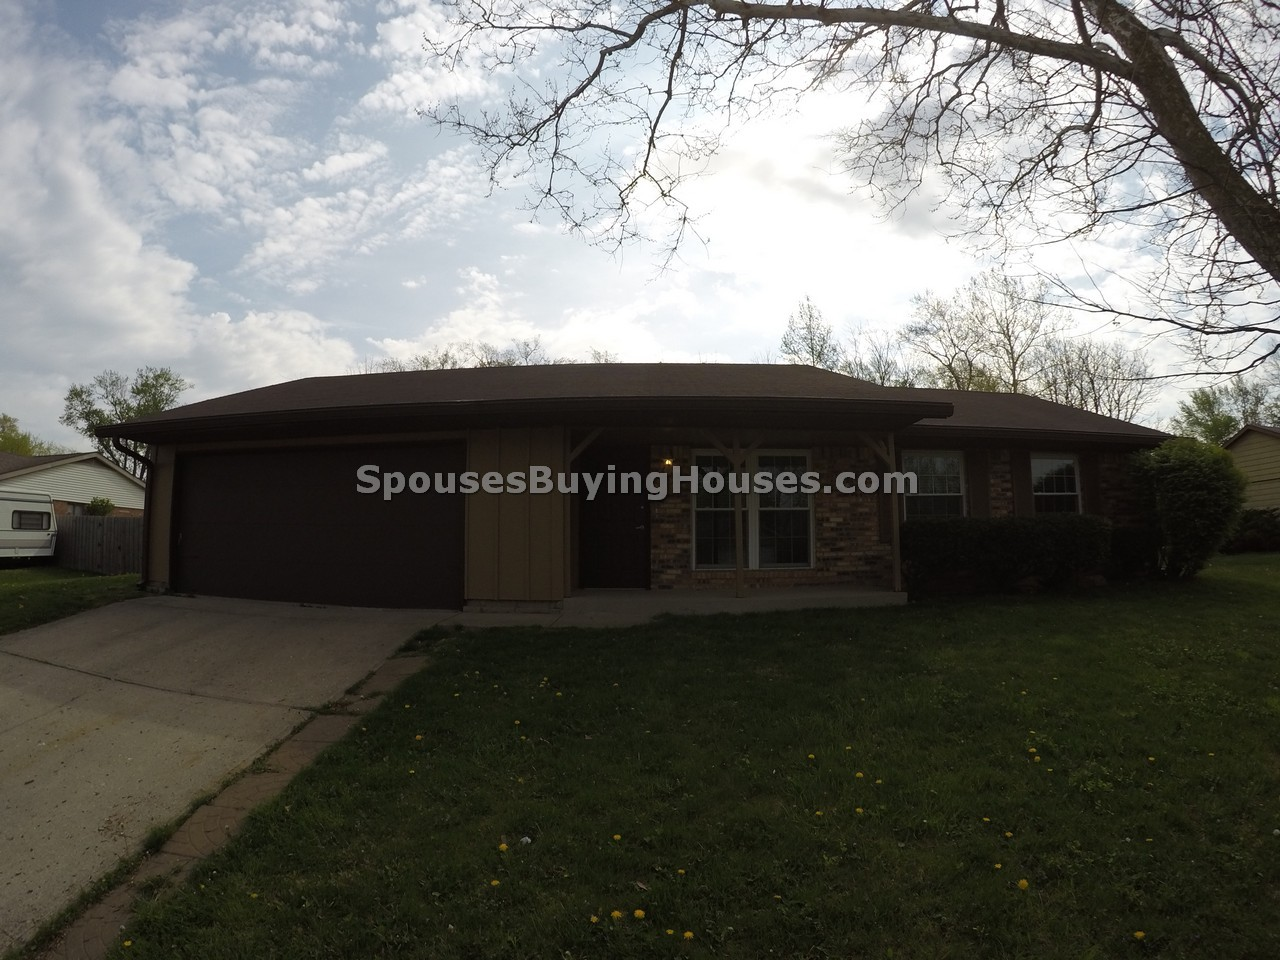 We Sell Houses Fast Indianapolis 6909 Lakeknoll Drive, Indianapolis, IN 46220